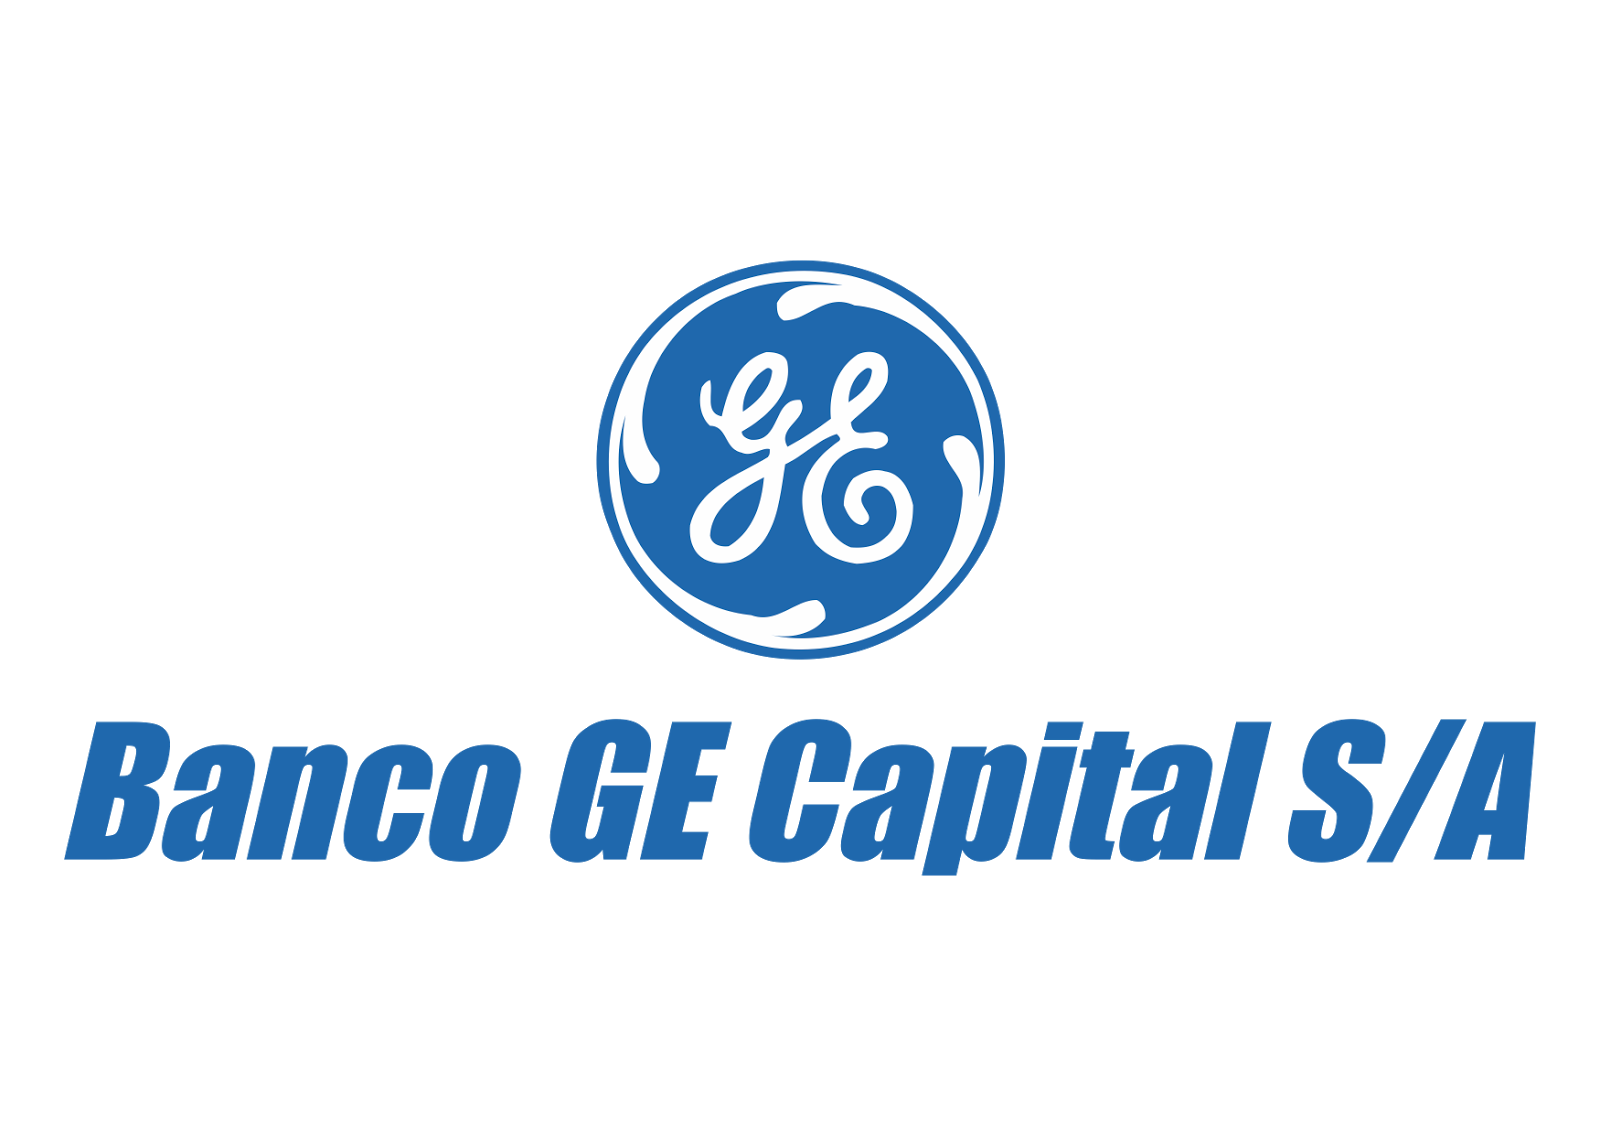 banco ge capital s/a logo vector png #3722